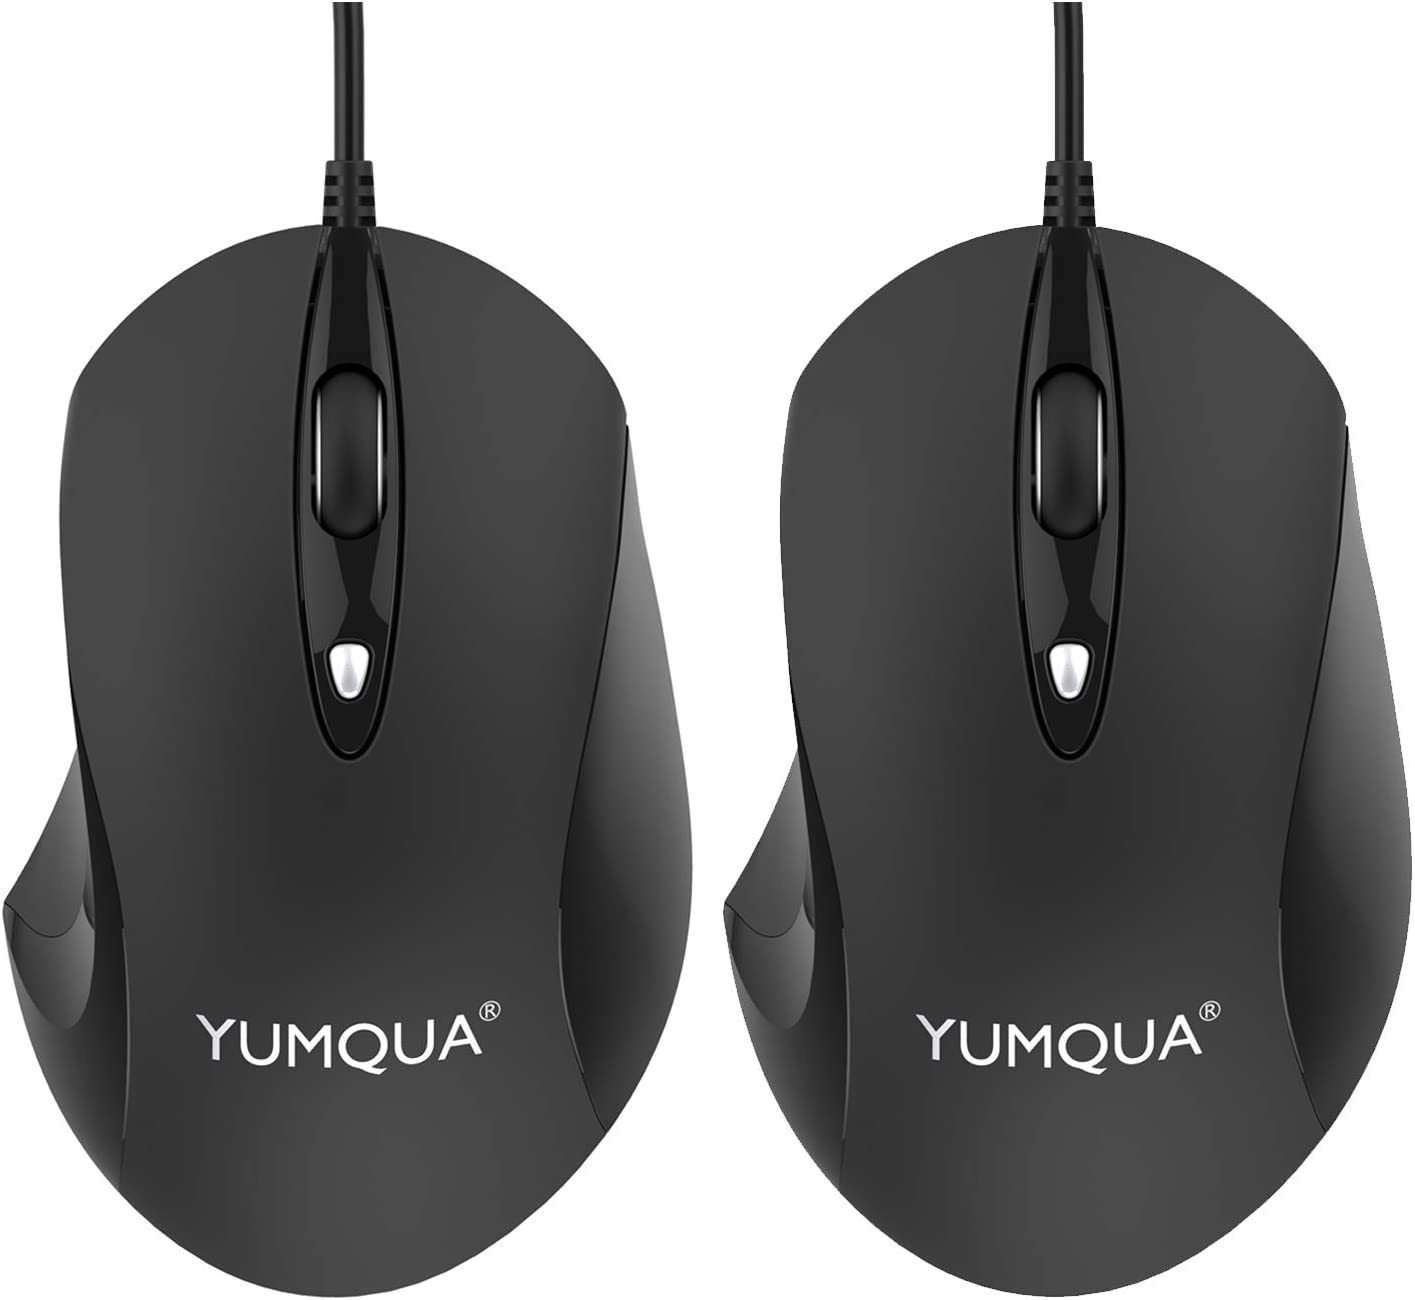 YUMQUA G189 USB Wired Mouse 2 Pack, 4 Adjustable DPI (Up to 1600), Office & Home Optical Computer Mouse for Laptop Chromebook PC Desktop Mac Notebook - Black